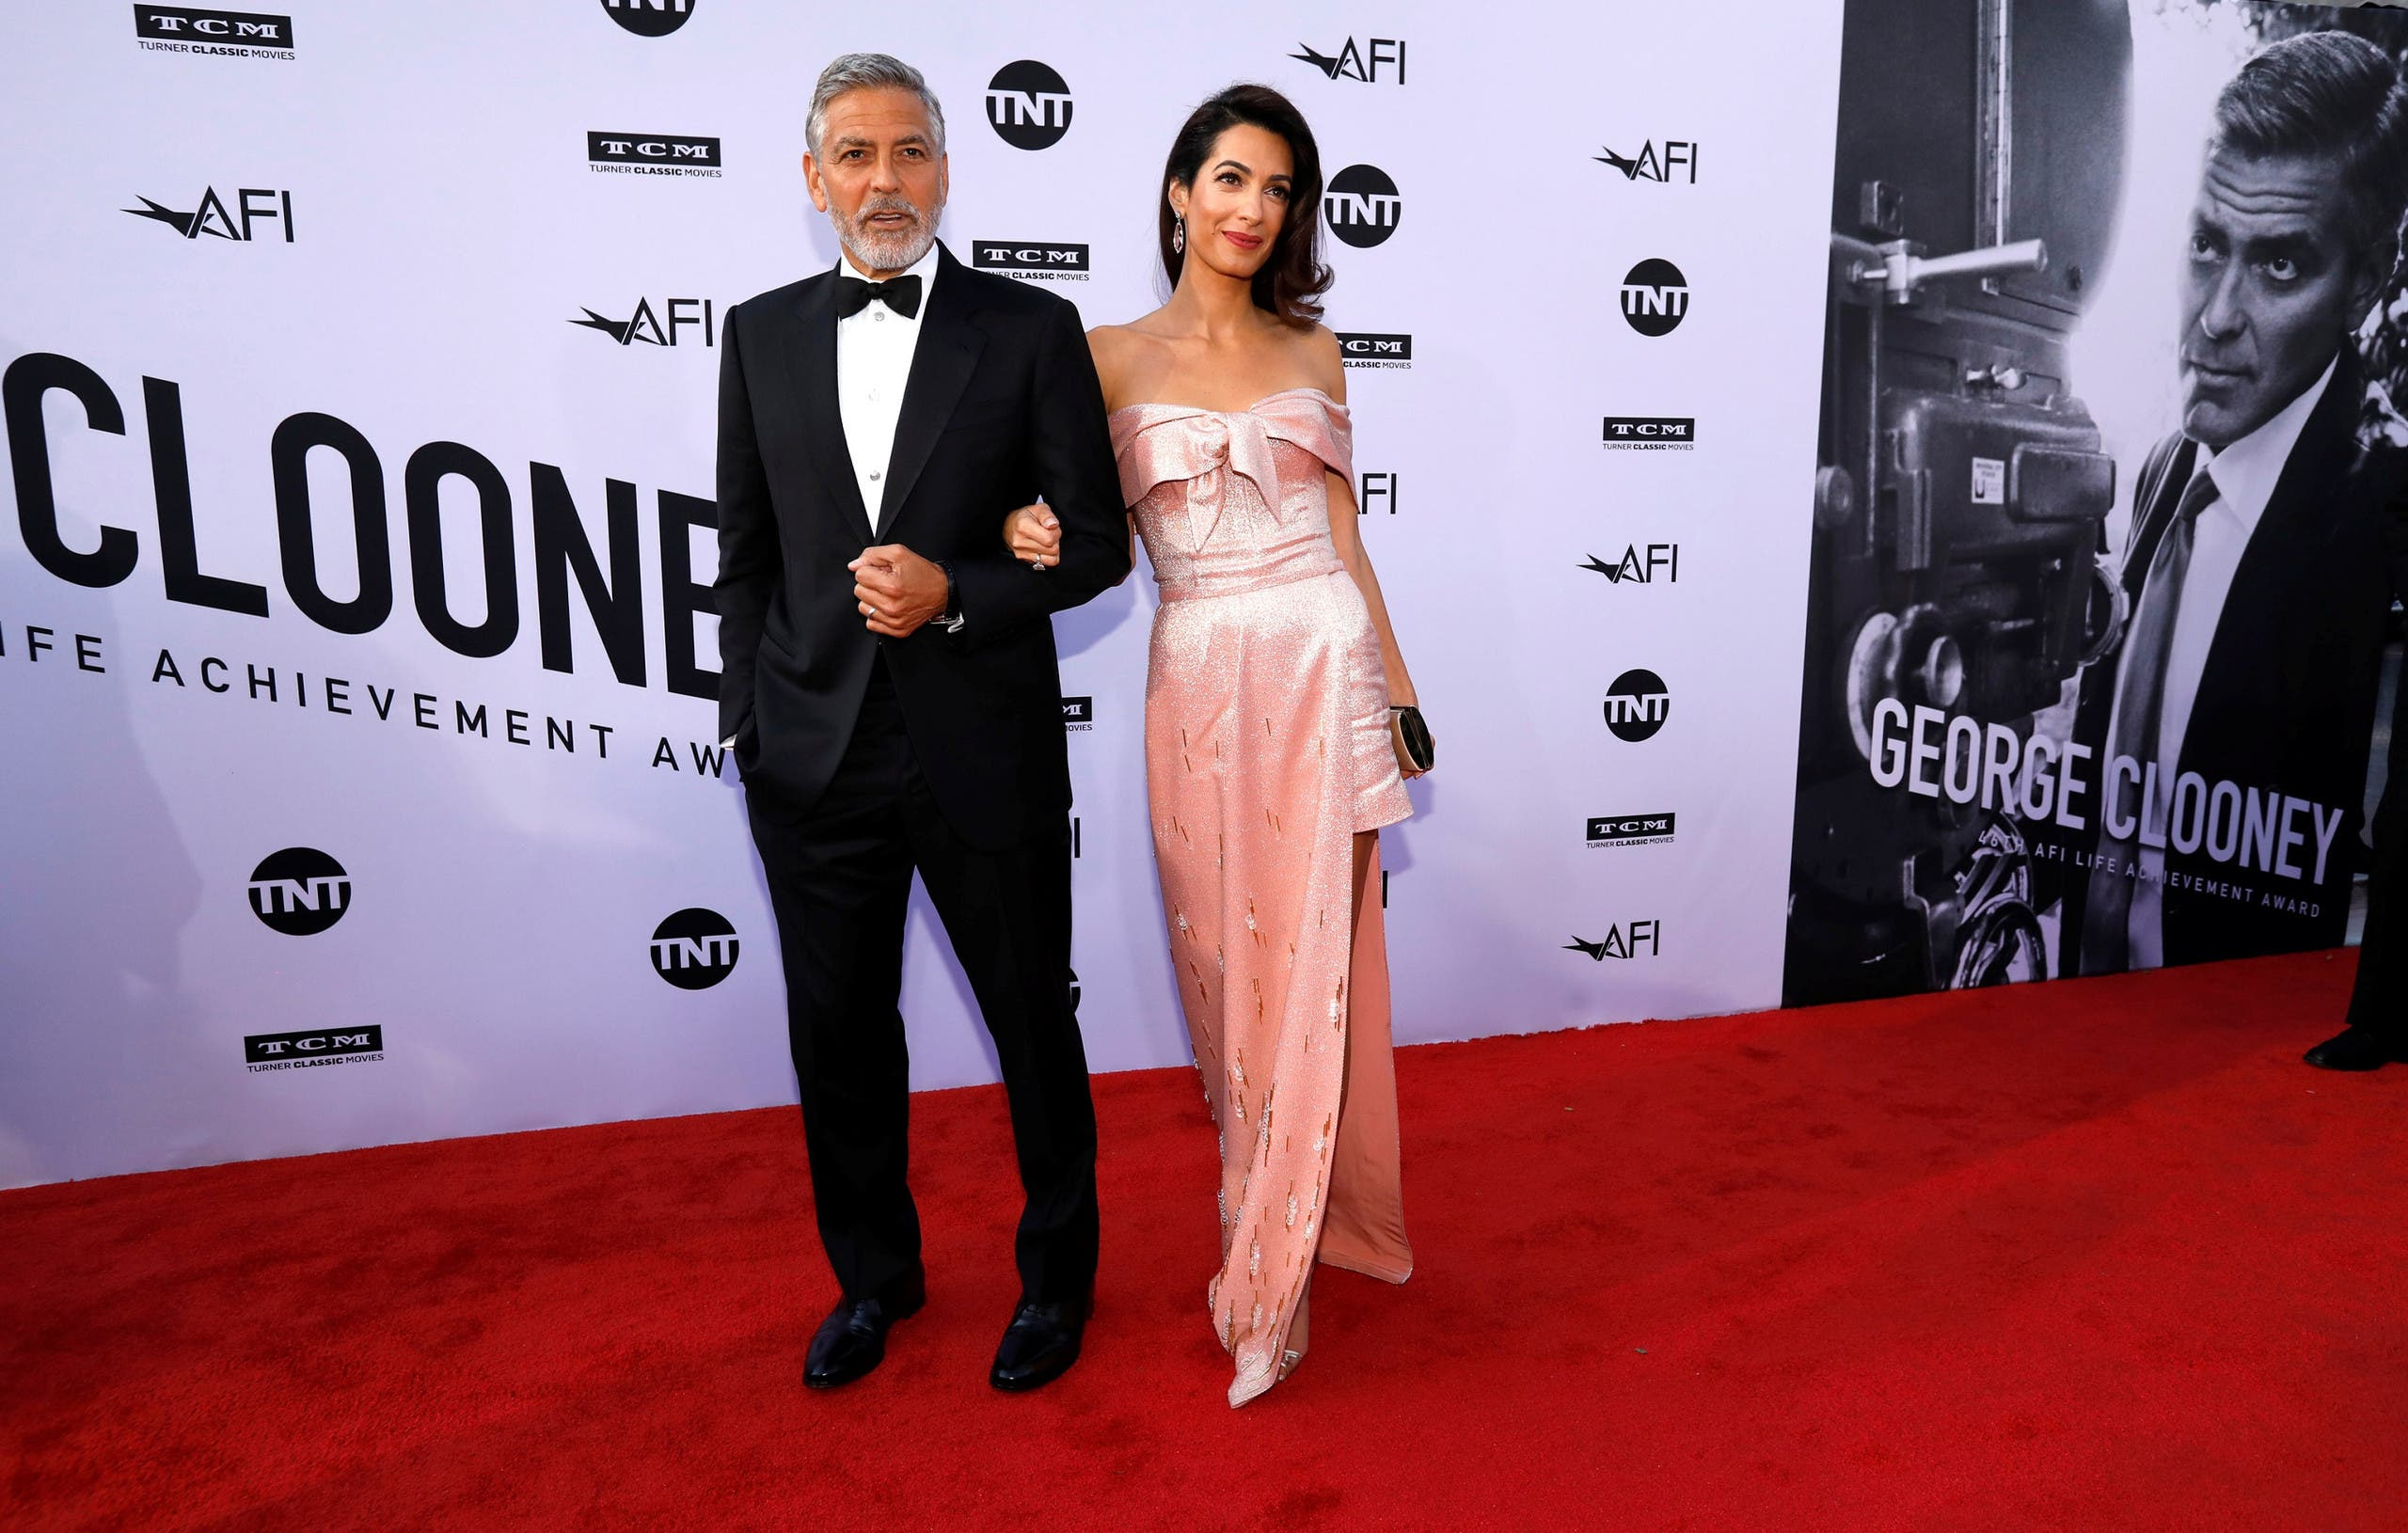 Actor Clooney and his wife Amal pose at the 46th AFI Life Achievement Award Gala in Los Angeles. (Reuters)